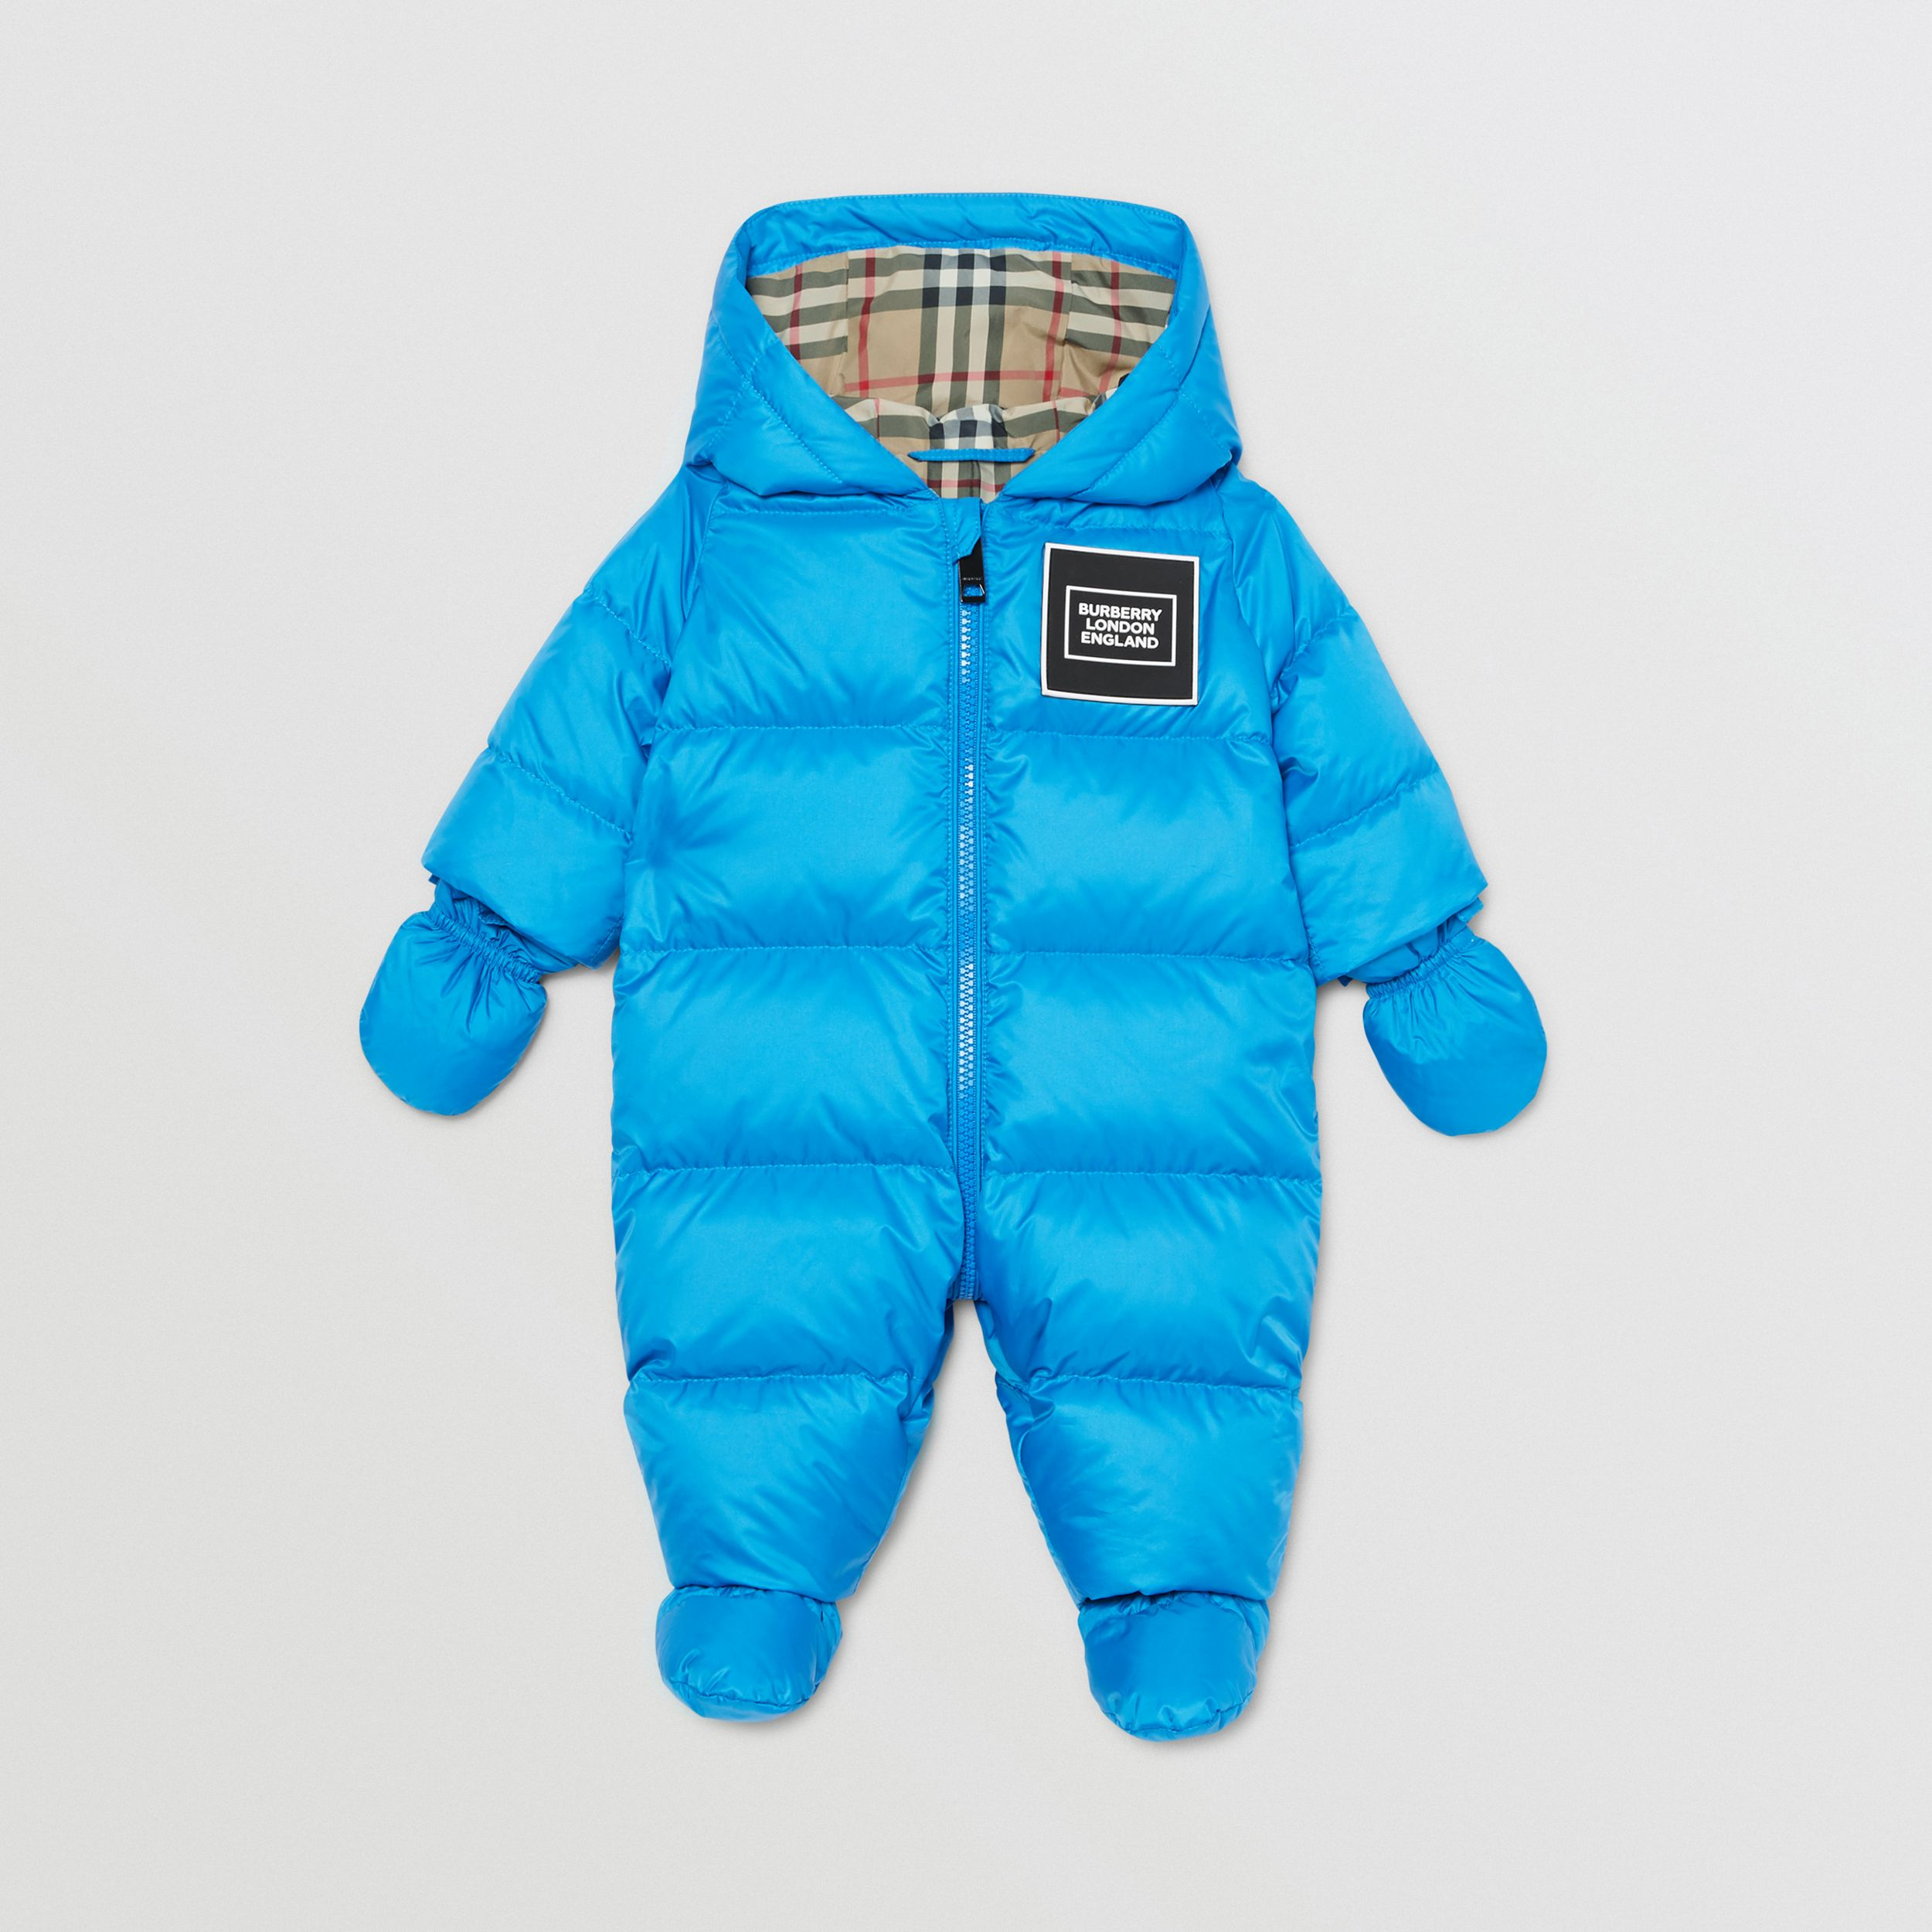 Logo Appliqué Puffer Suit in Cerulean Blue - Children | Burberry - 1